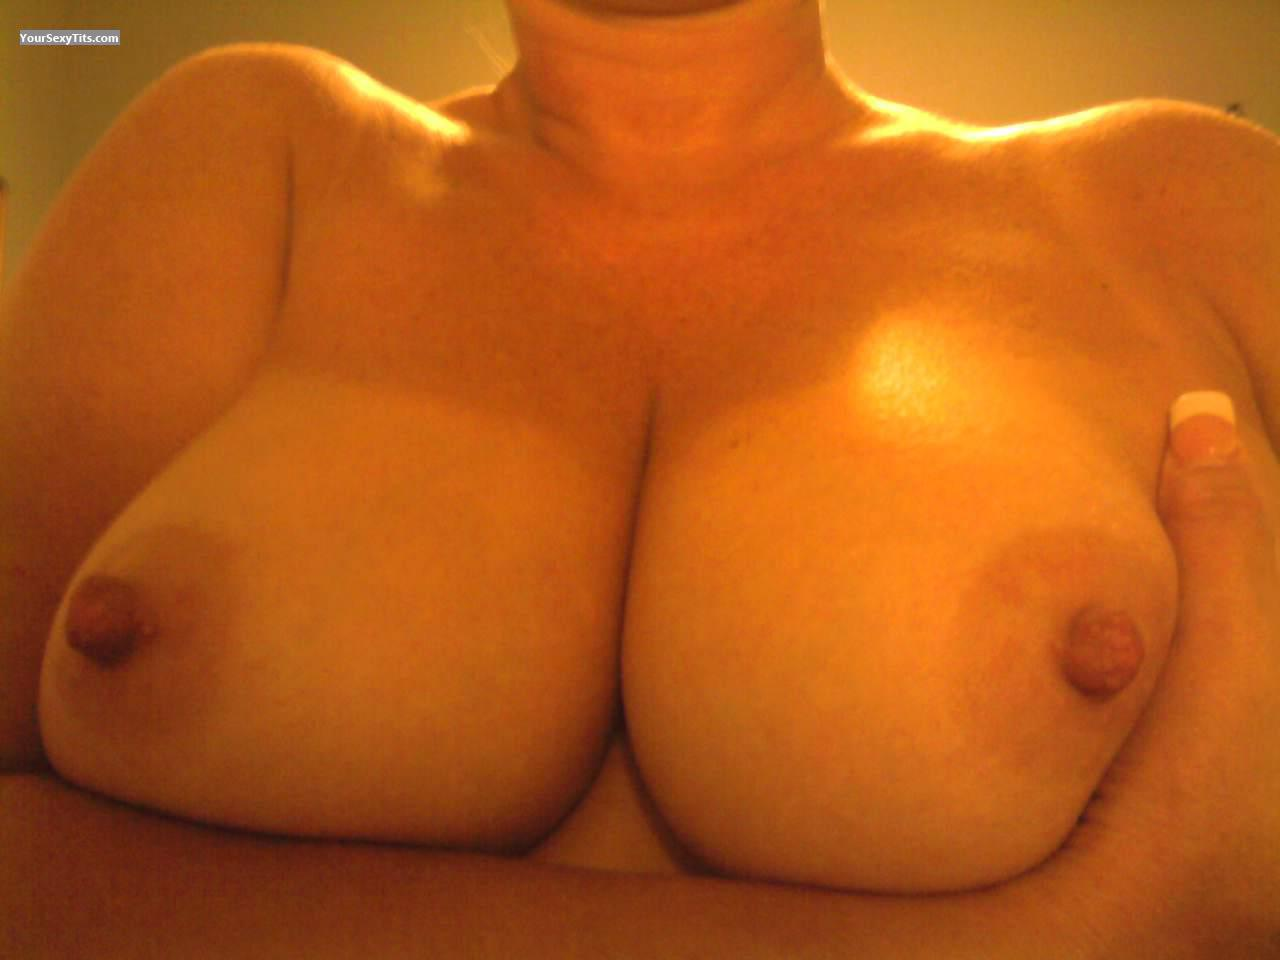 My Big Tits Selfie by Ms Gr8pair